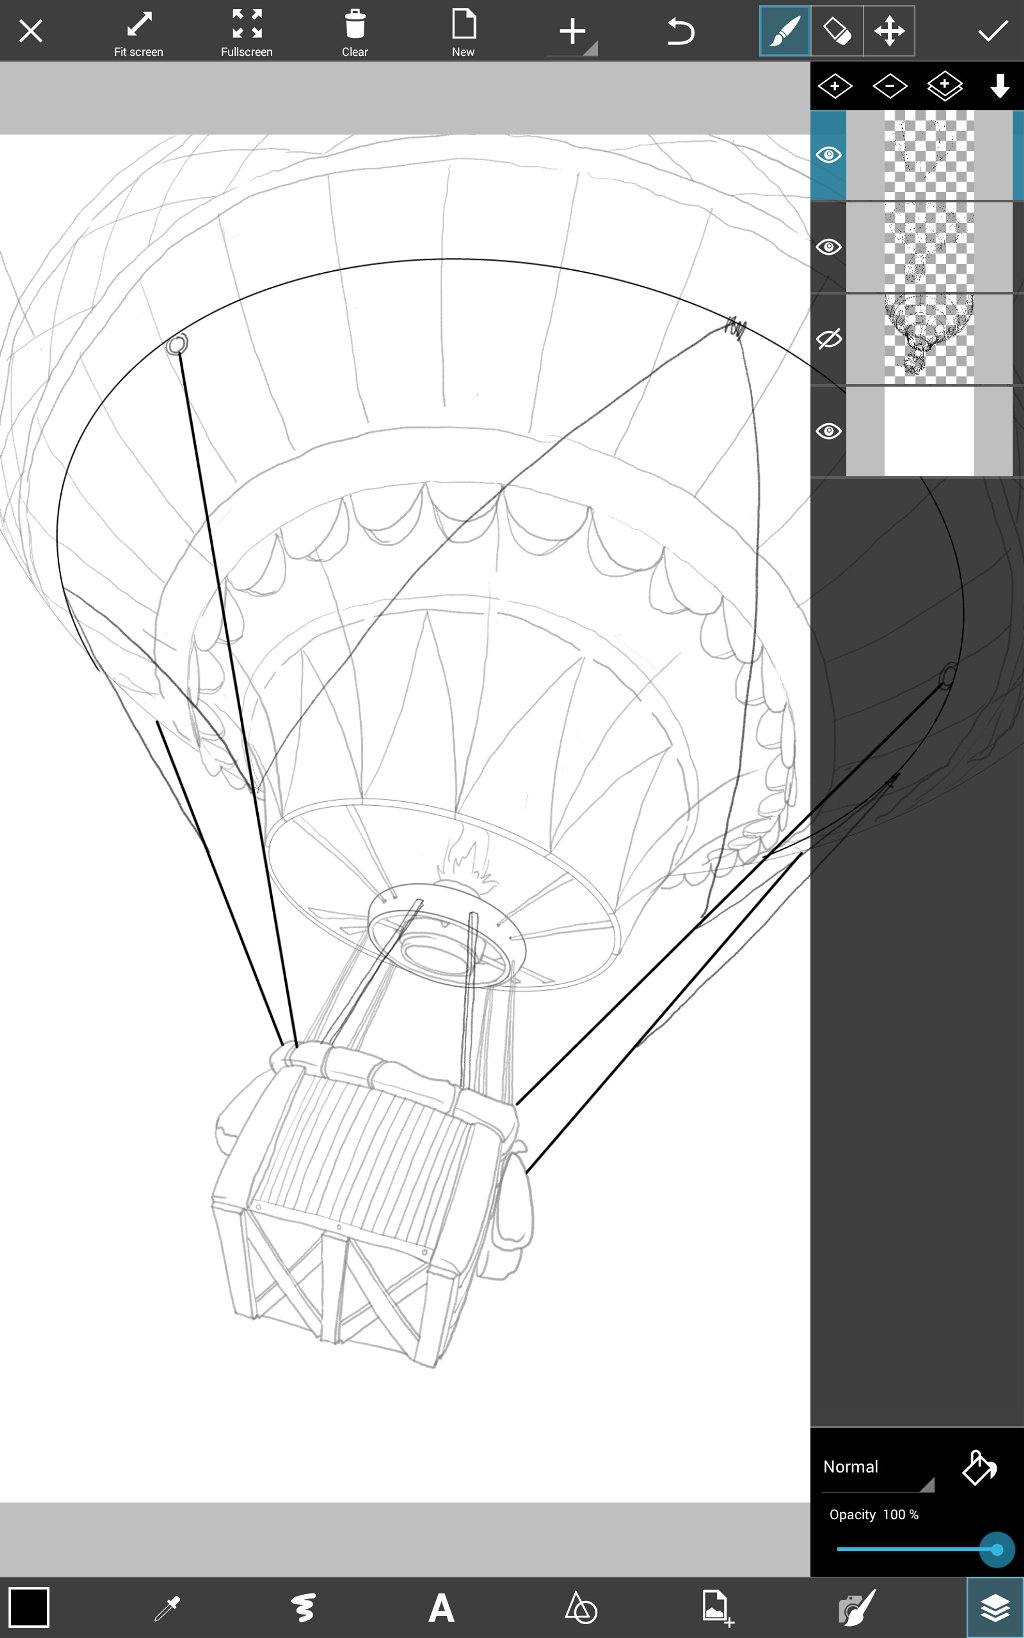 how to draw air how to draw a hot air balloon step by step create air to draw how